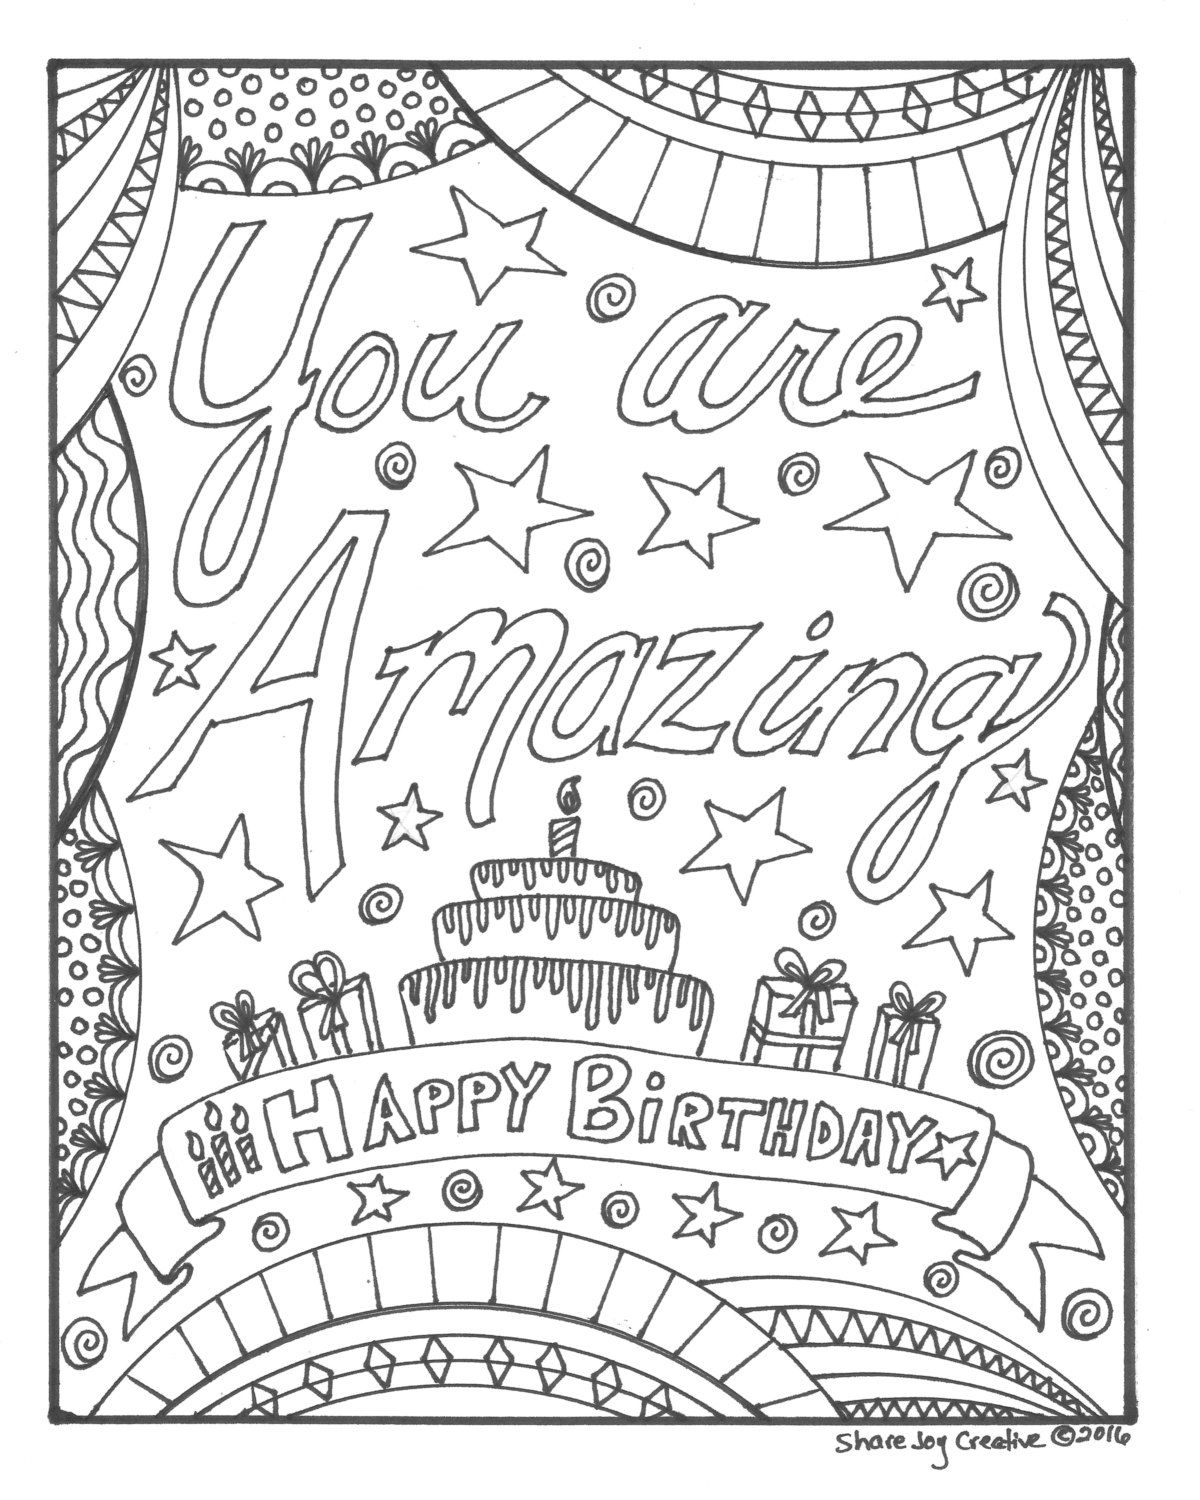 Happy Birthday Coloring Page You Are Amazing Printable Etsy In 2020 Happy Birthday Coloring Pages Birthday Coloring Pages Coloring Pages